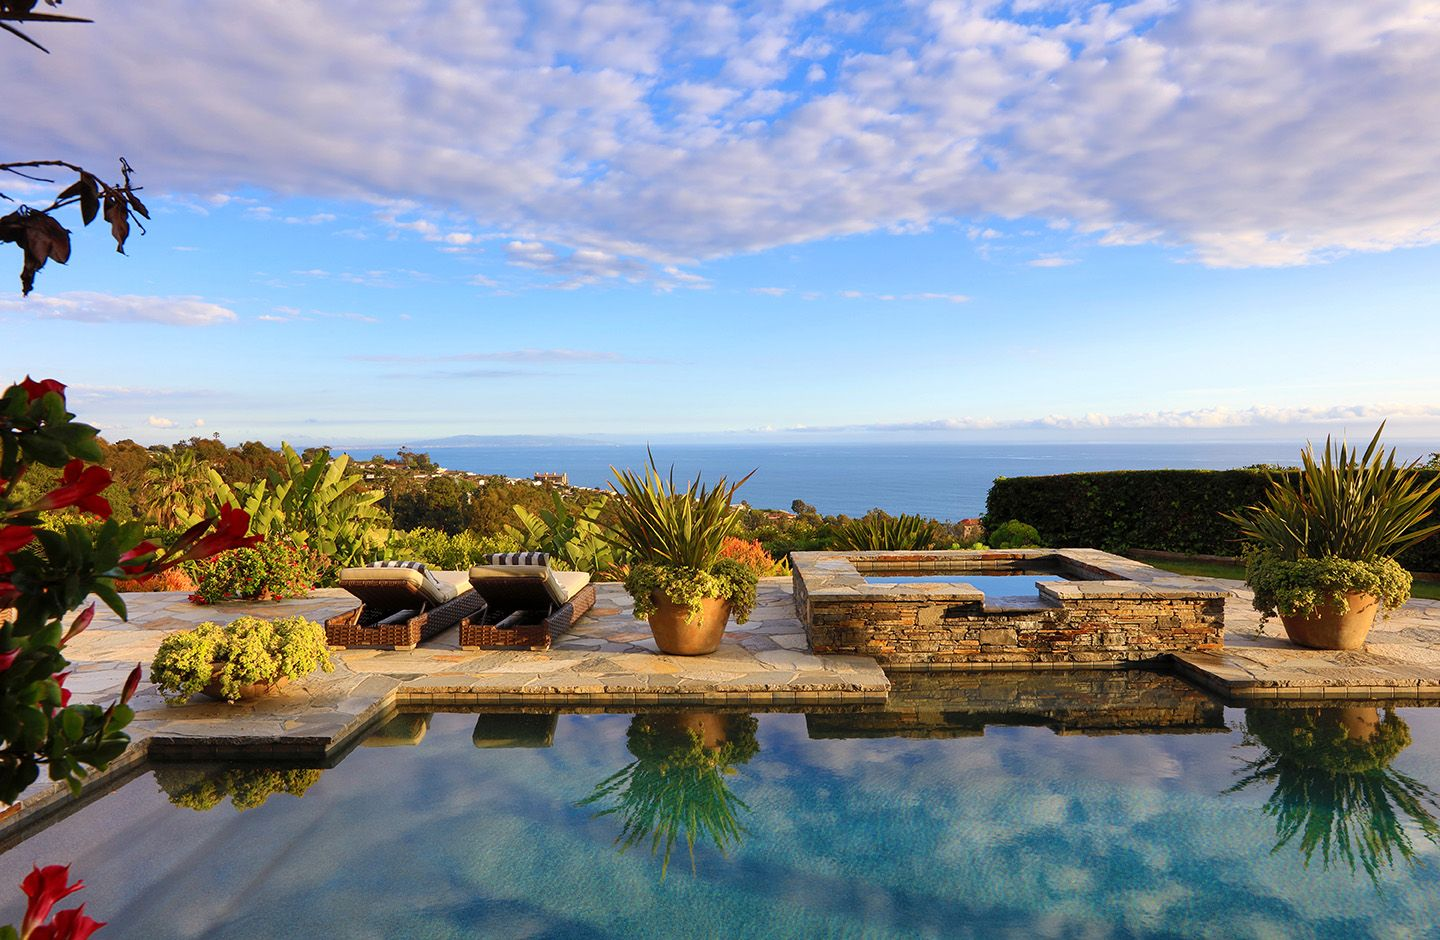 Luxury Home Pool With Ocean View Luxury Real Estate Marketing Luxurious Backyard Luxury Real Estate